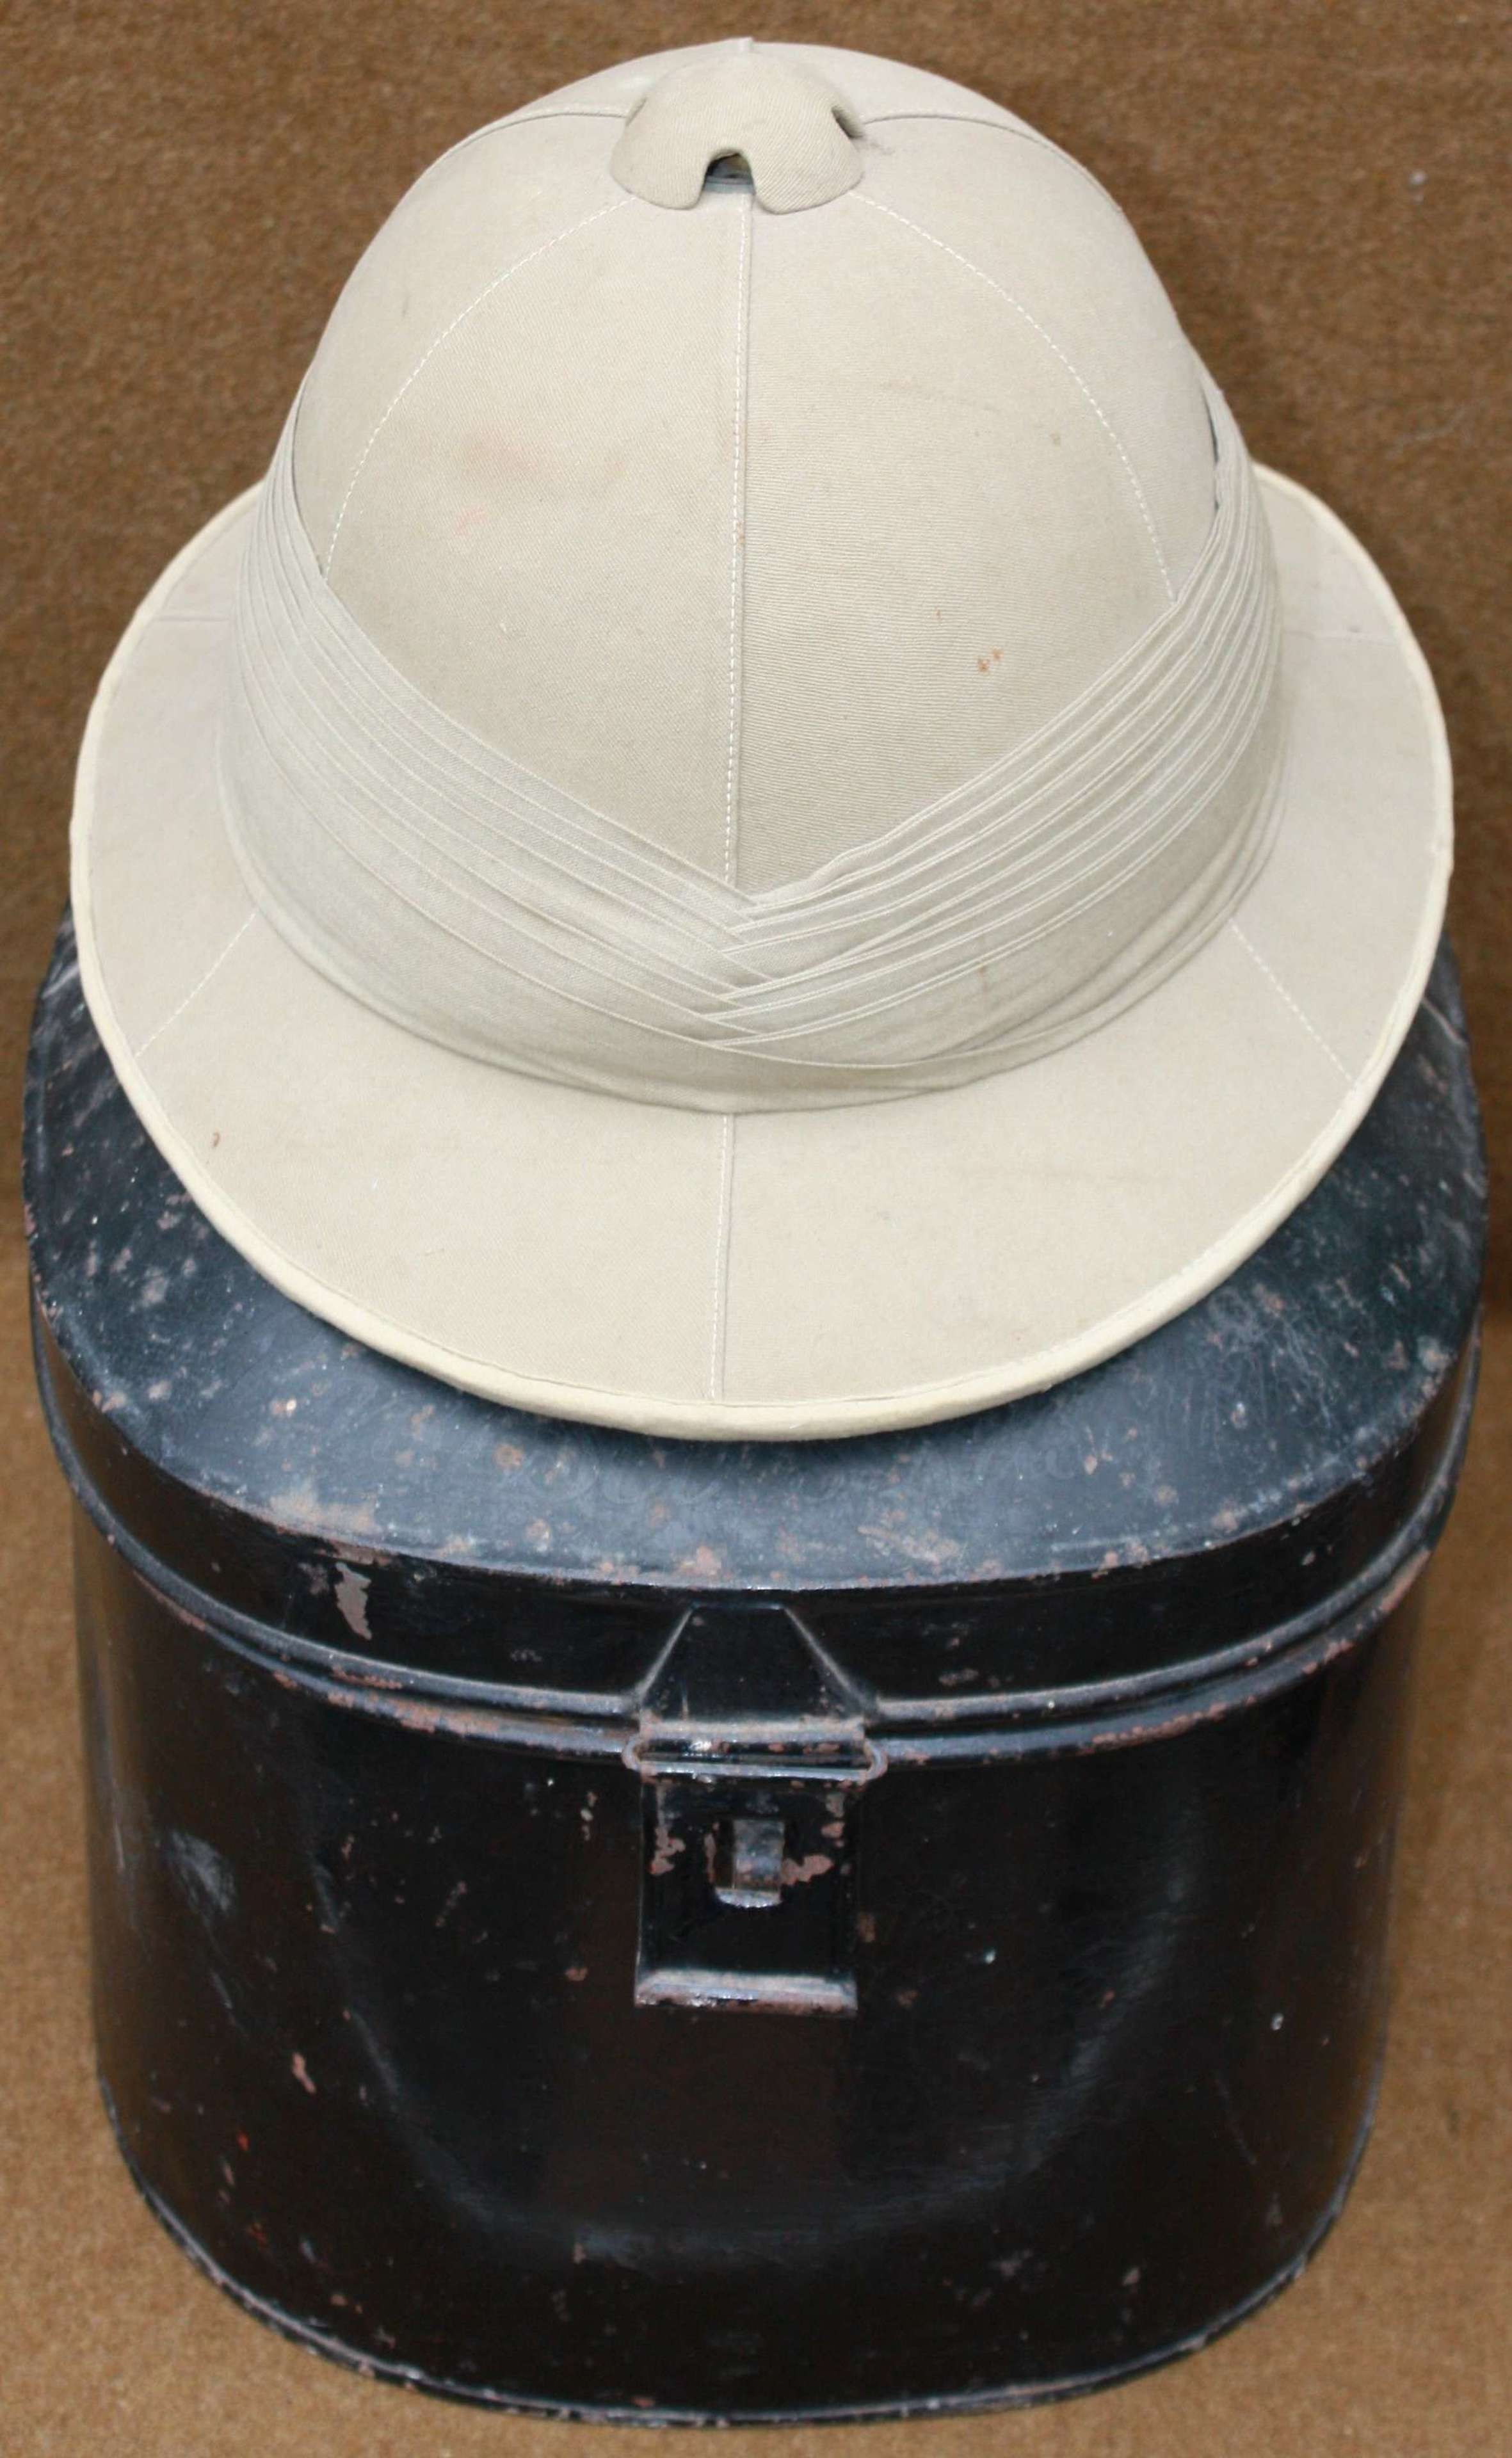 A VERY GOOD LATE 1930'S PERIOD EARLY WWII SOLAR HELMET AND TIN NAMED